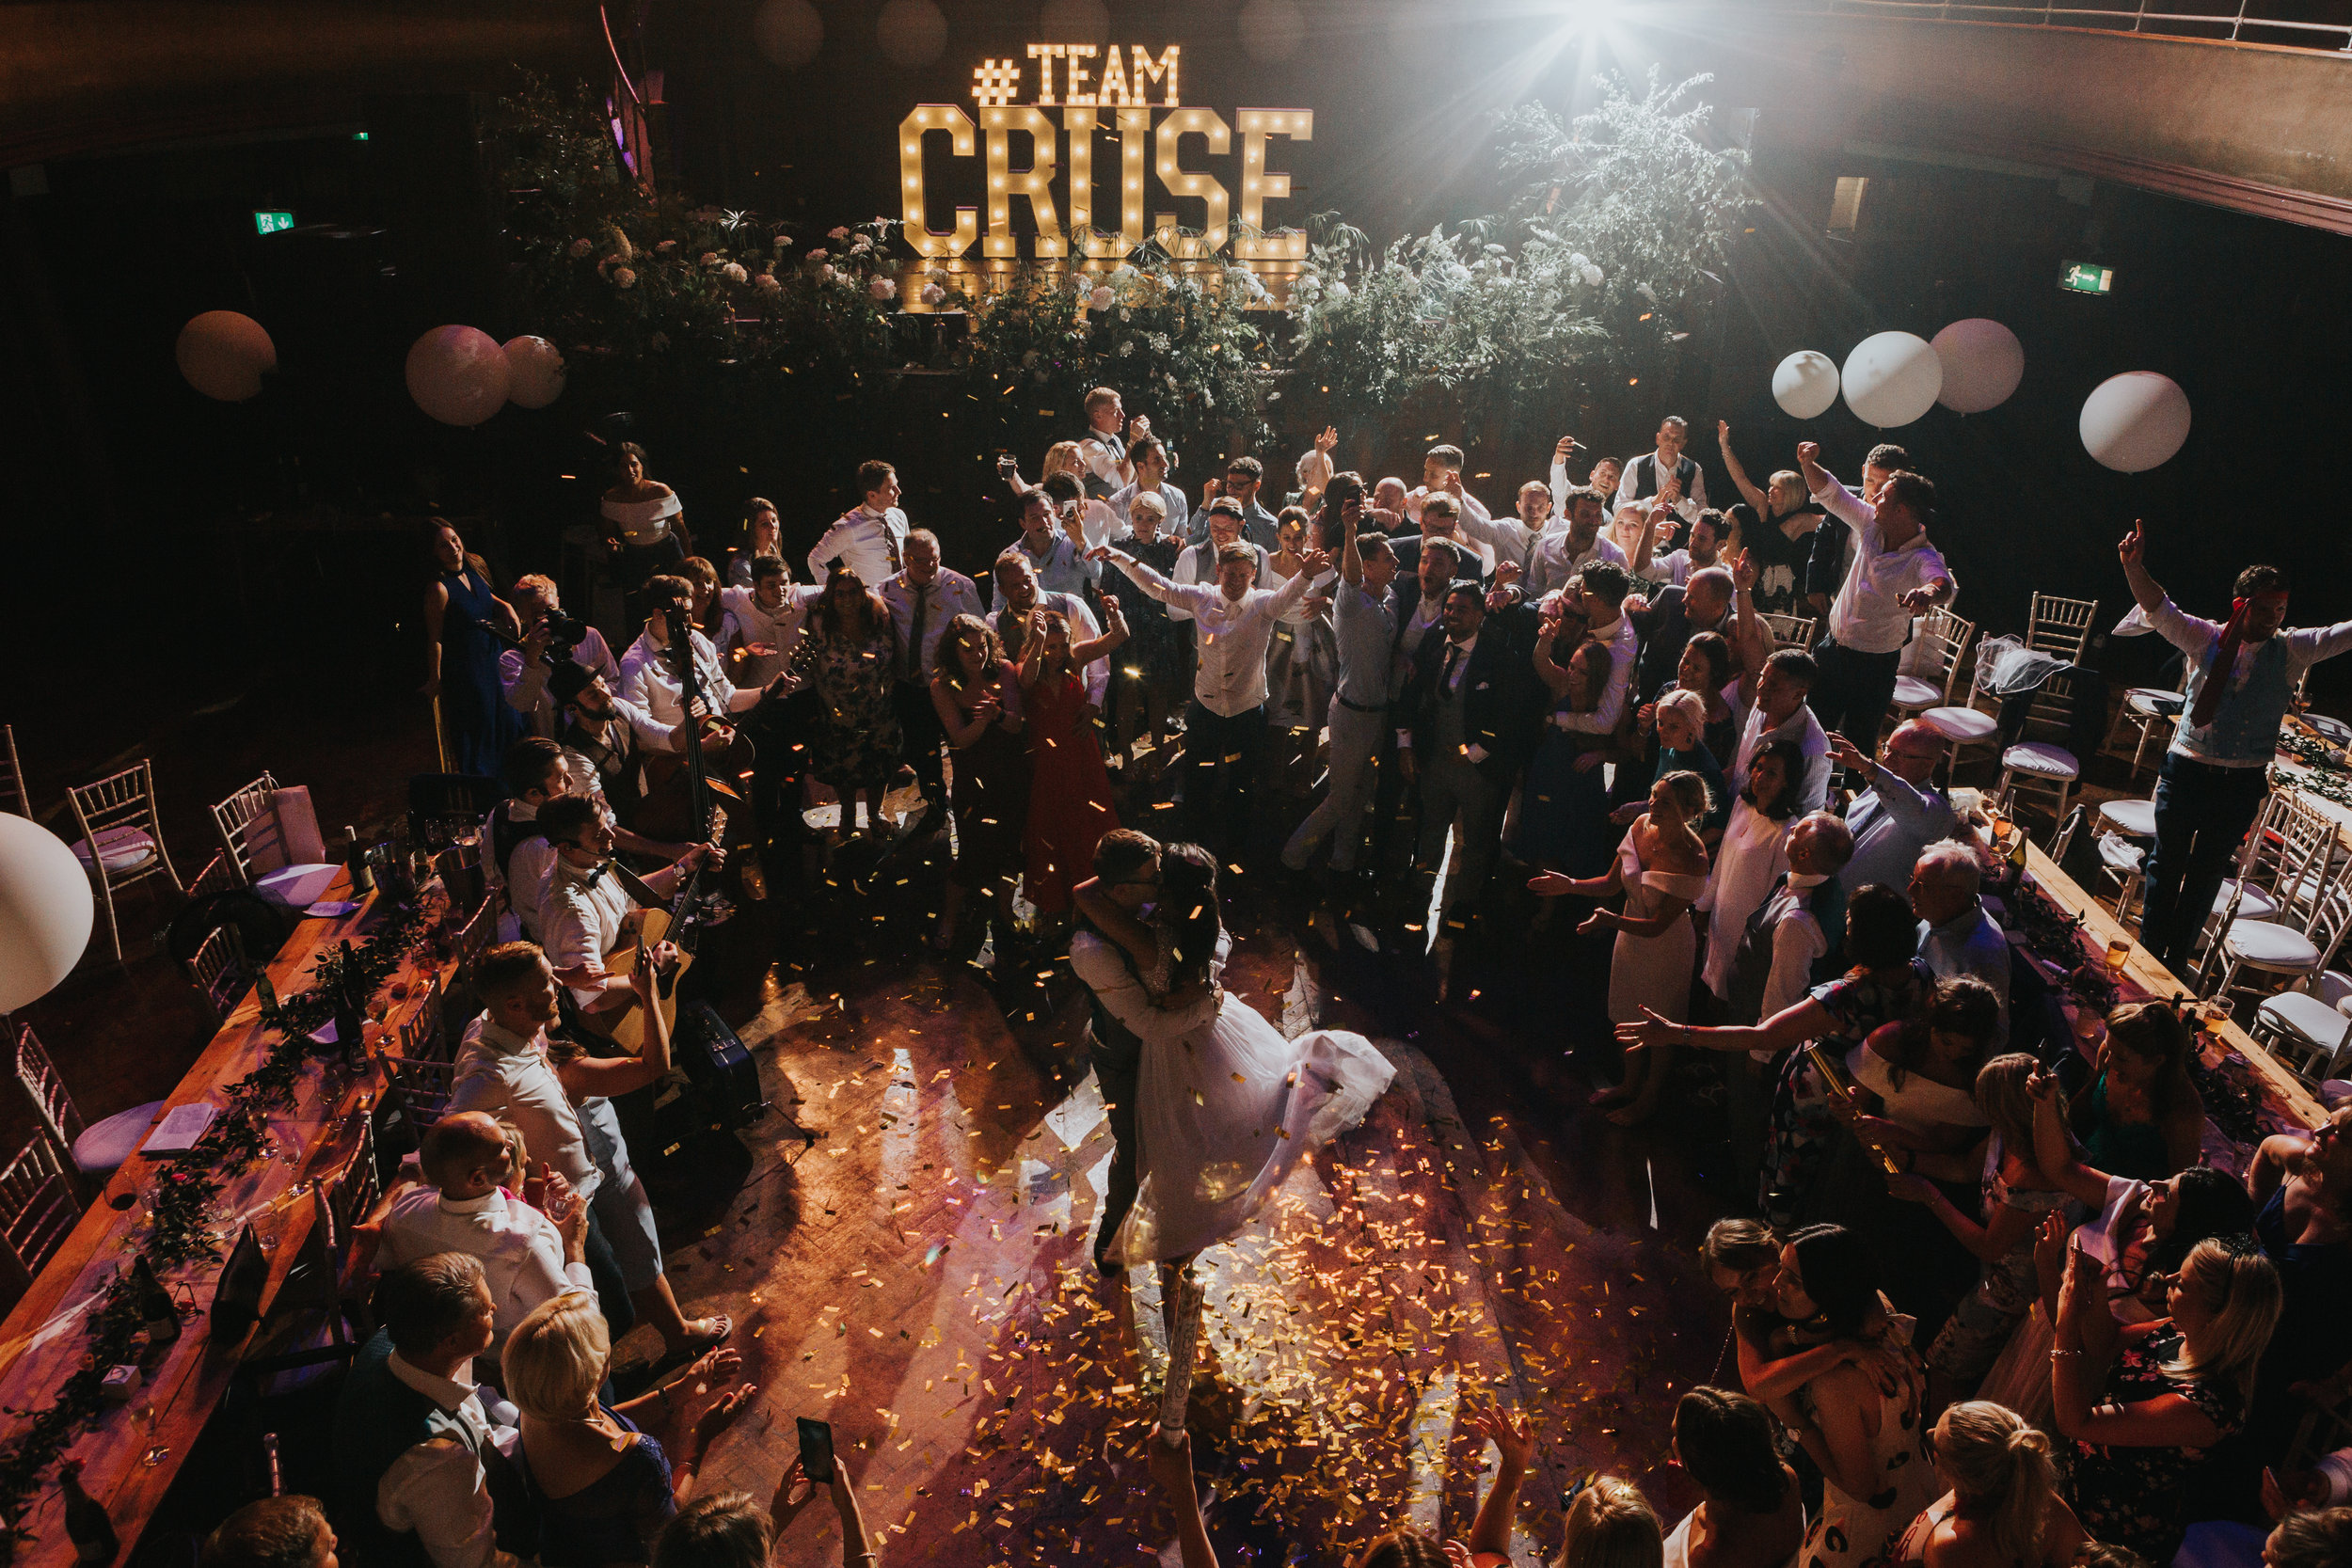 Bride and Groom dance together surrounded by their friends and family as a golden confetti floats down onto them, with the words #TEAMCRUSE in lights behind them. At the Albert Hall Manchester.